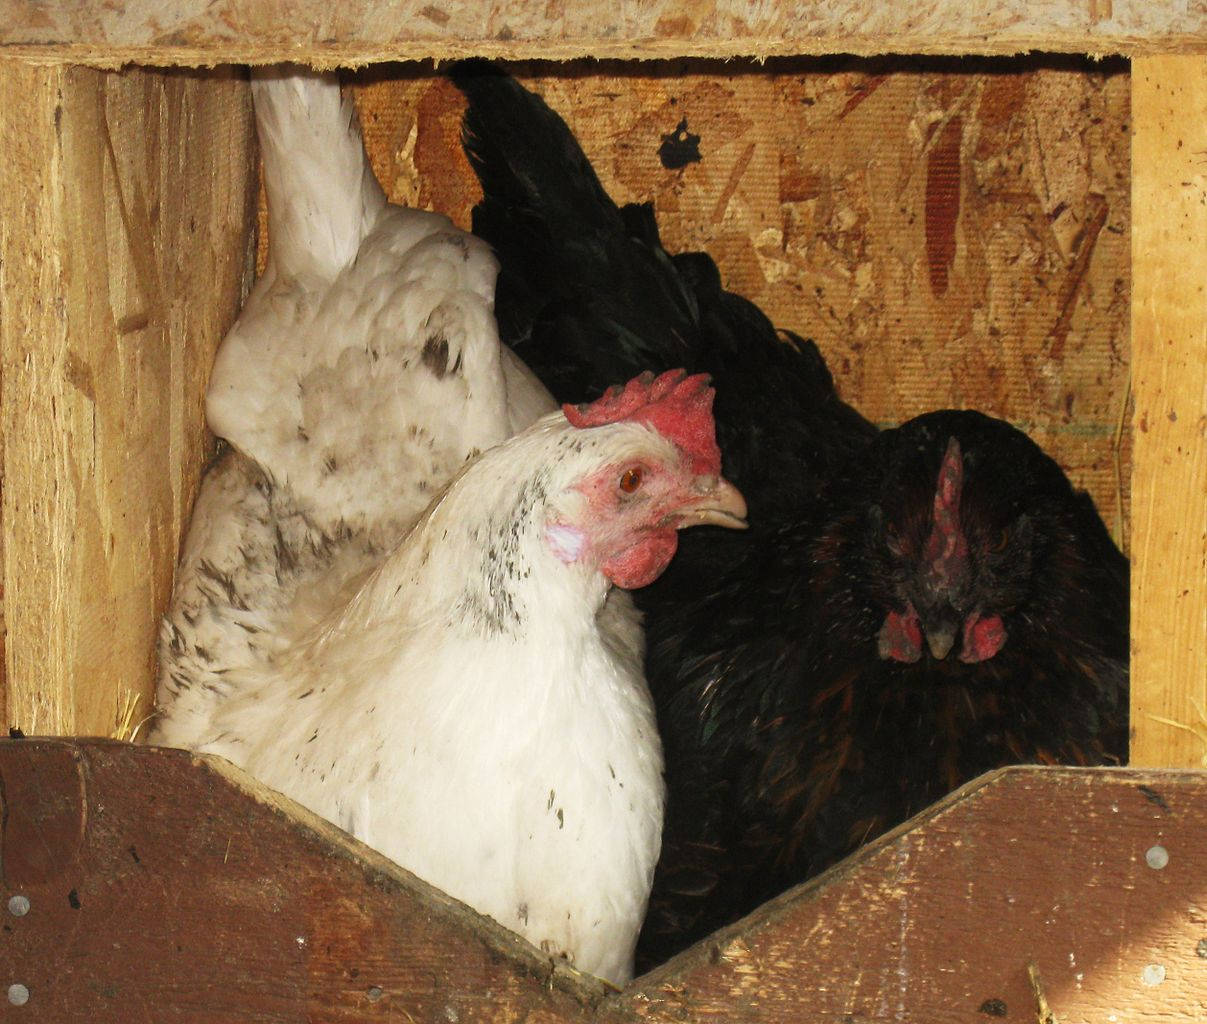 File:White Leghorn & Black Sex Link Share a Nest.